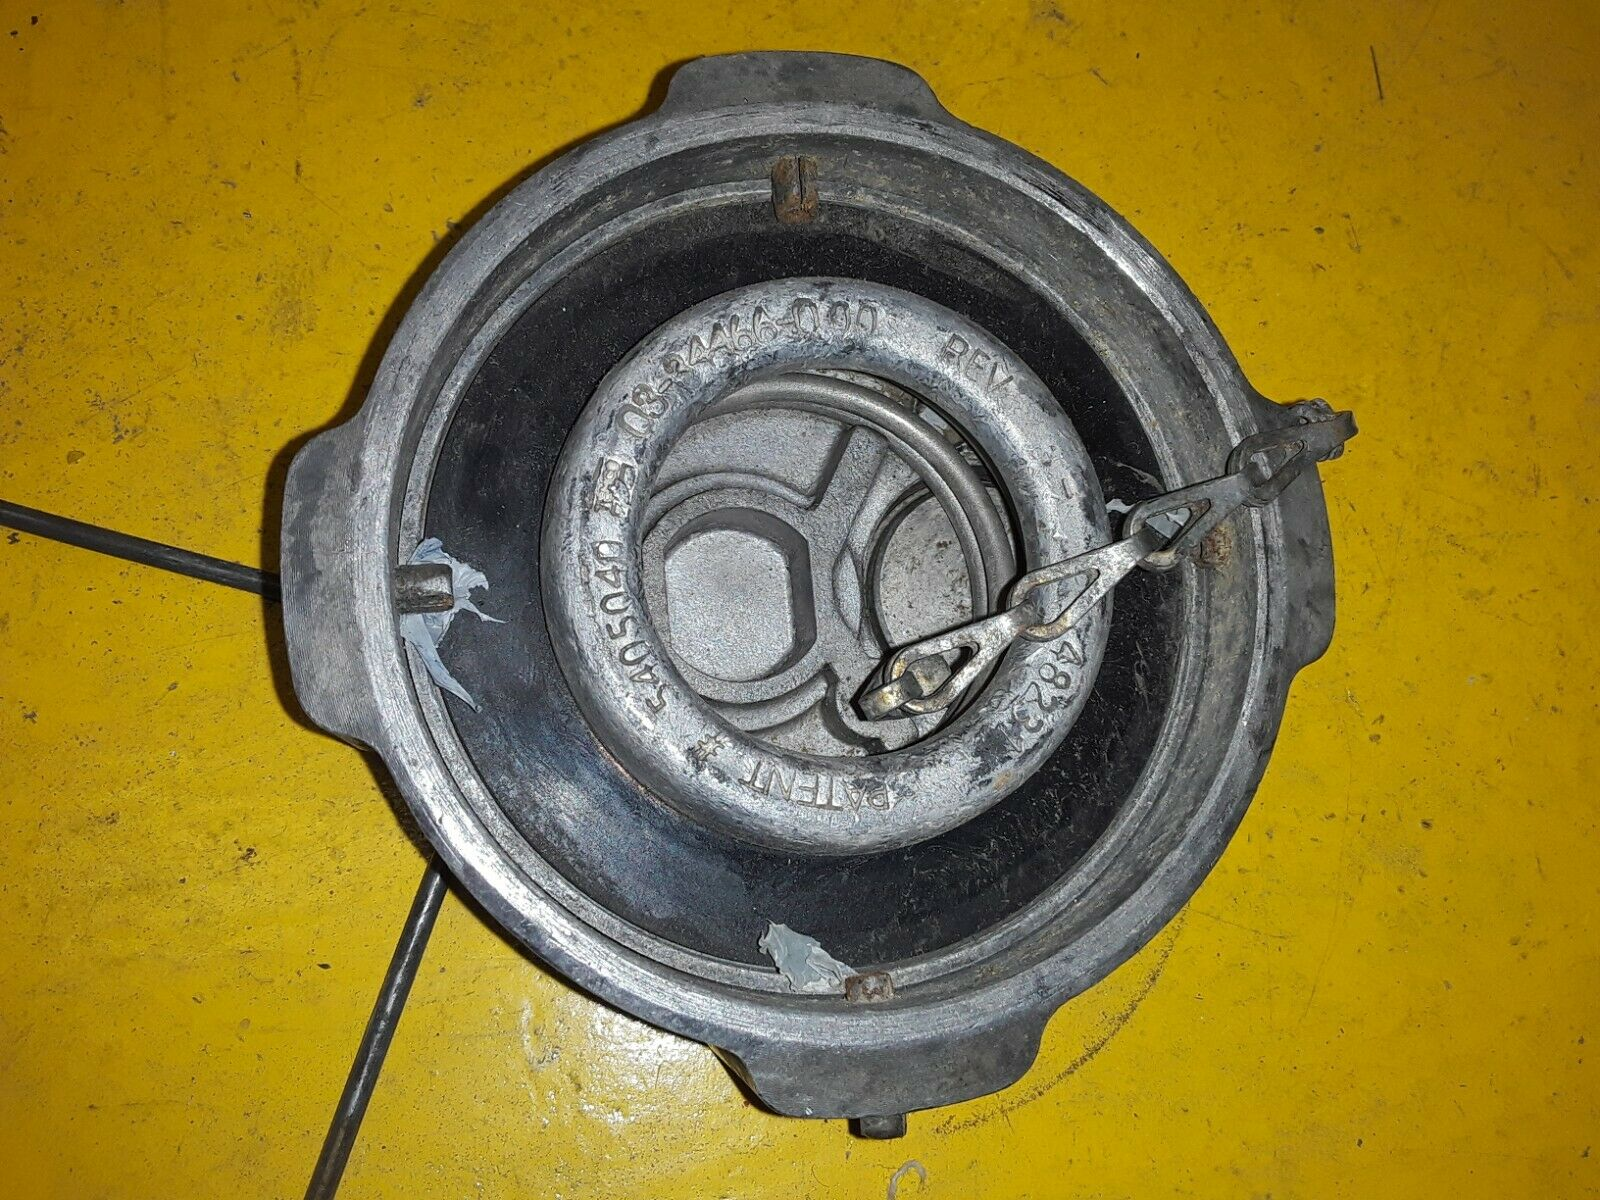 OEM FREIGHTLINER fuel caps 5405040 / 03-34466-000 qty- 2 Does not apply